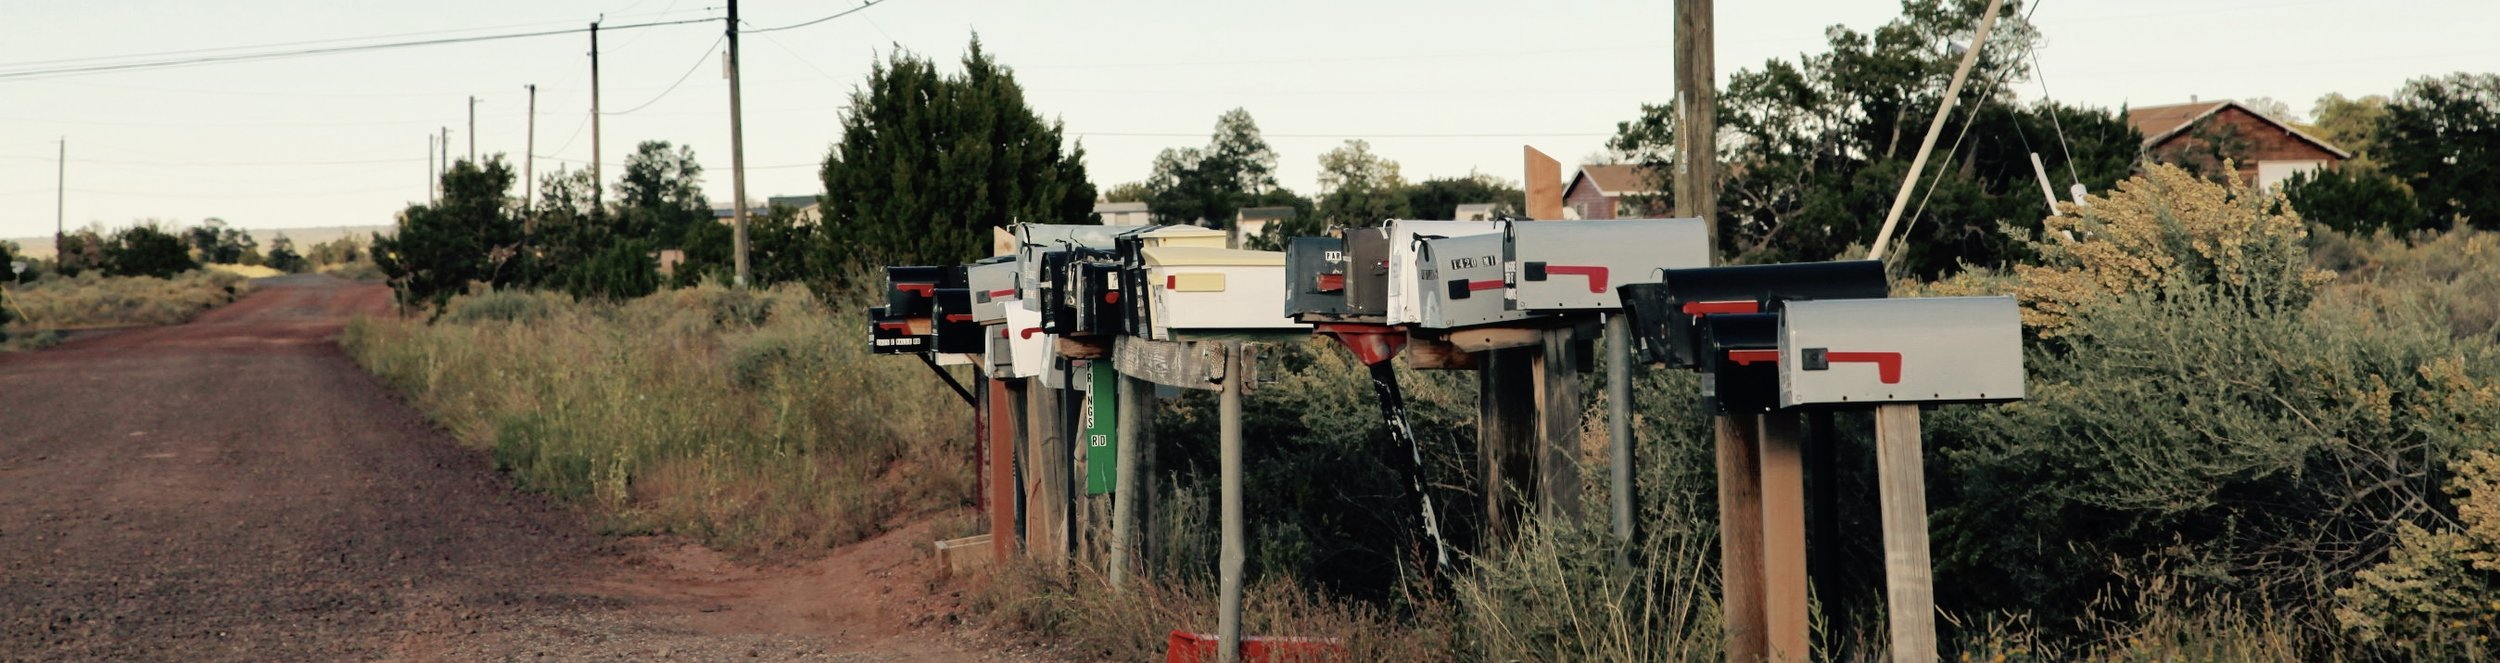 Mailboxes on the way to the Grand Canyon